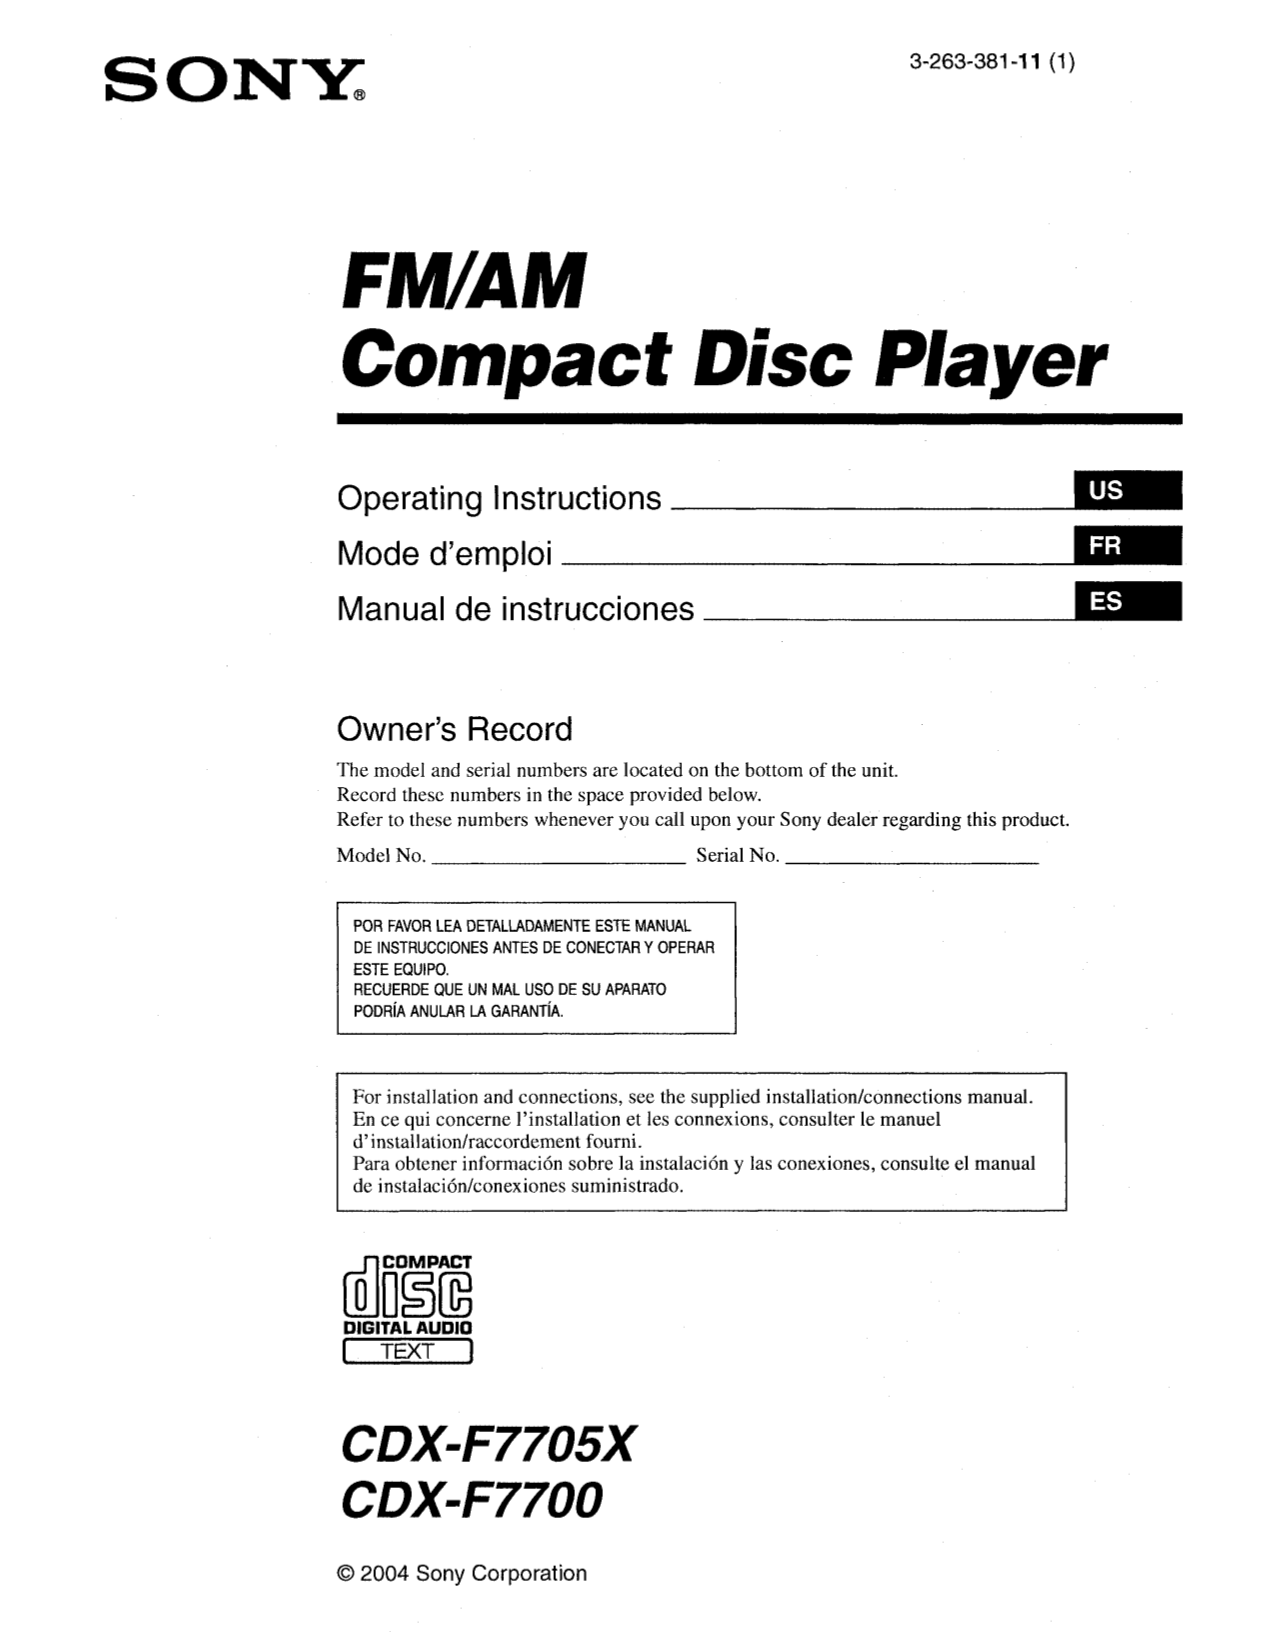 158f7700.pdf 0 download free pdf for sony cdx f7705x car receiver manual sony cdx l350 wiring diagram at aneh.co